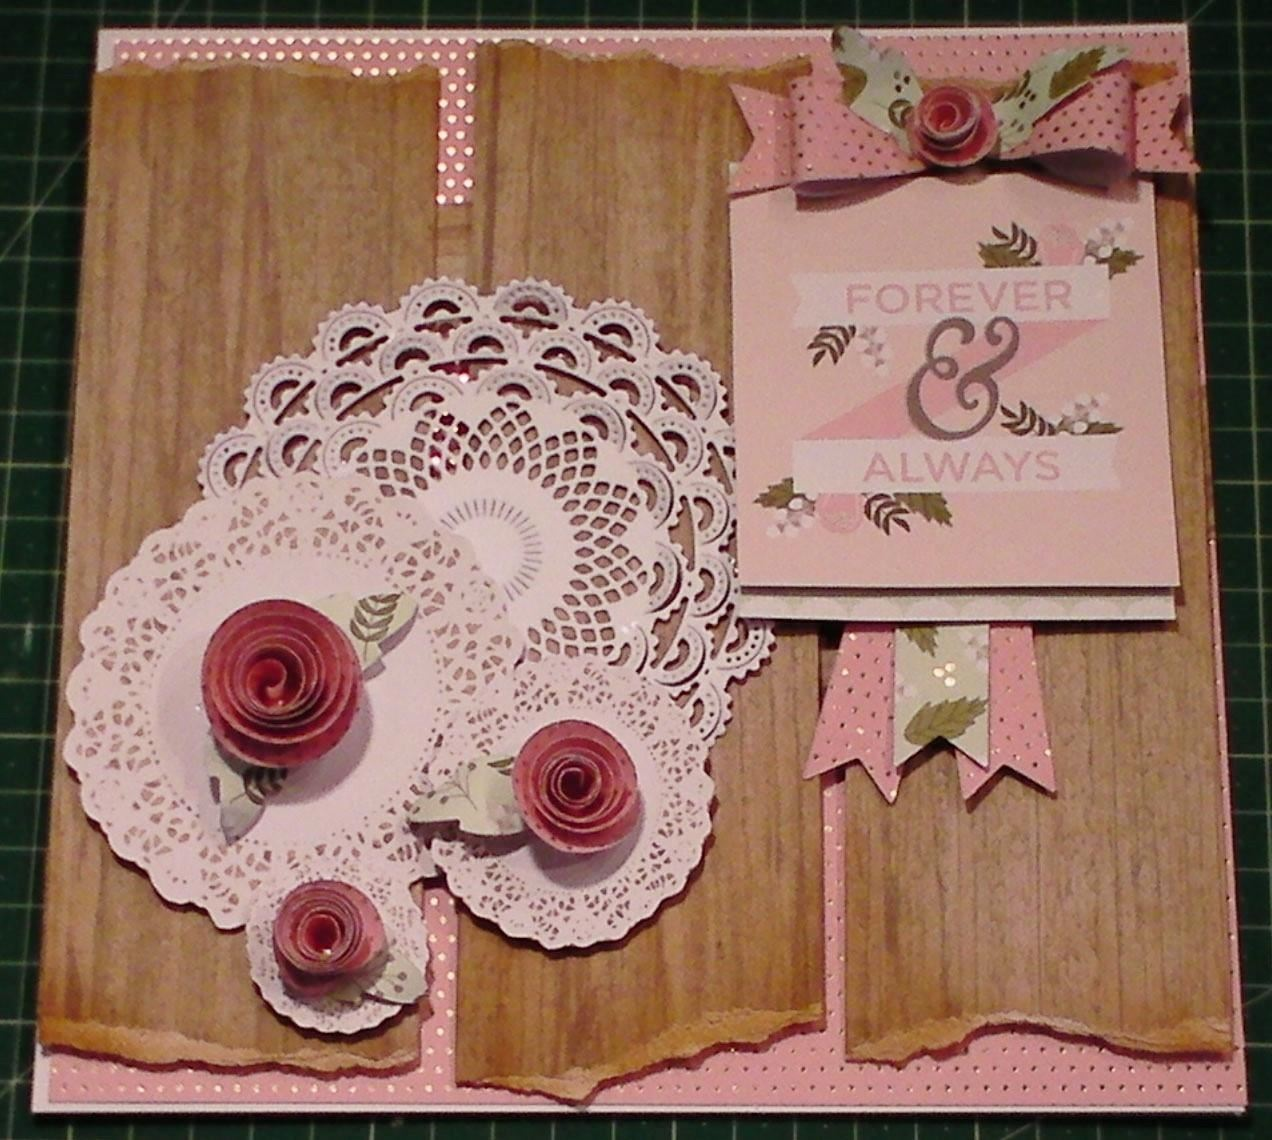 How to Make a Happy Day Vintage Doily Card